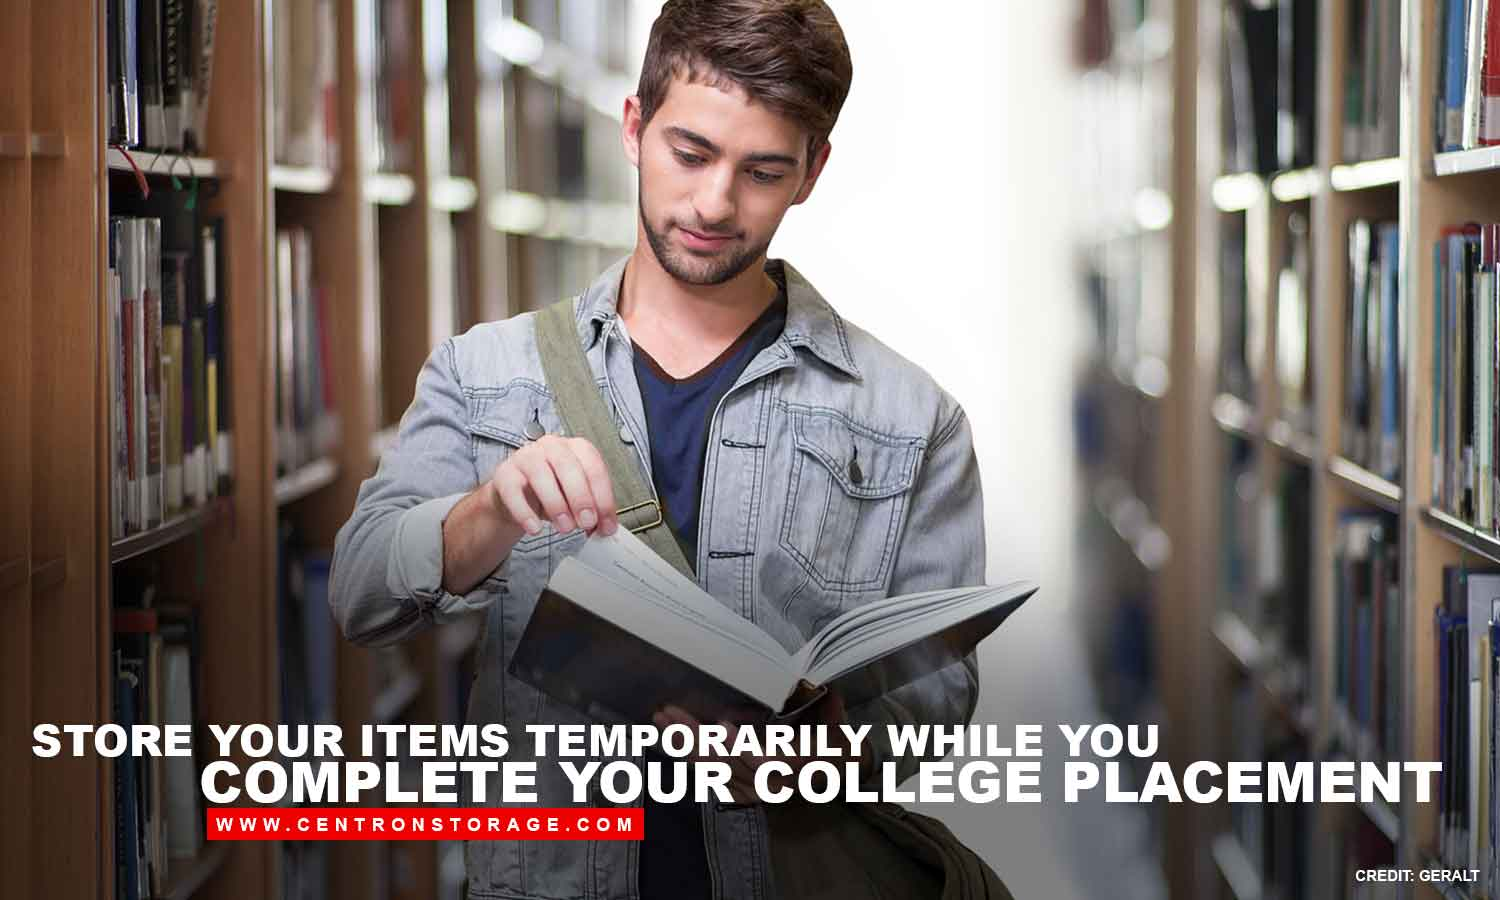 Store your items temporarily while you complete your college placement